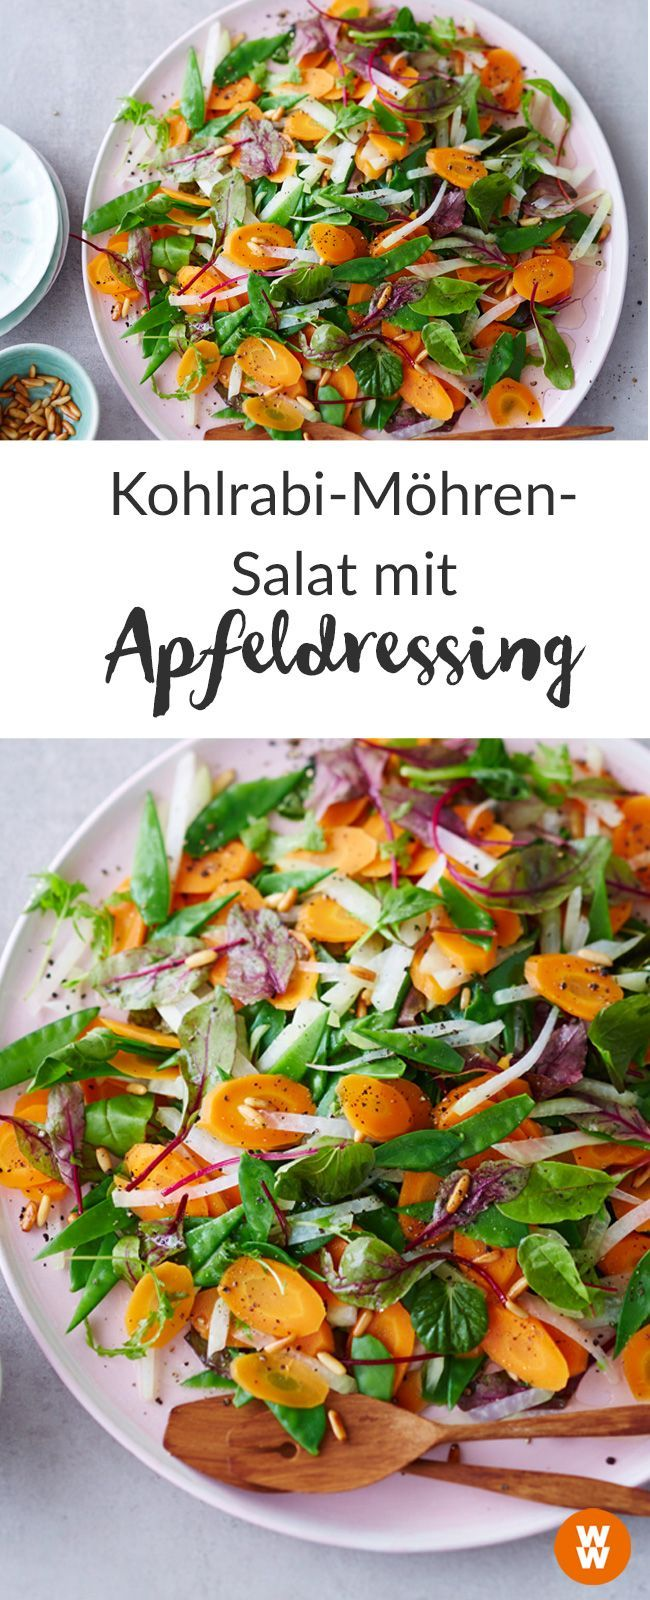 Kohlrabi and carrot salad with apple dressing